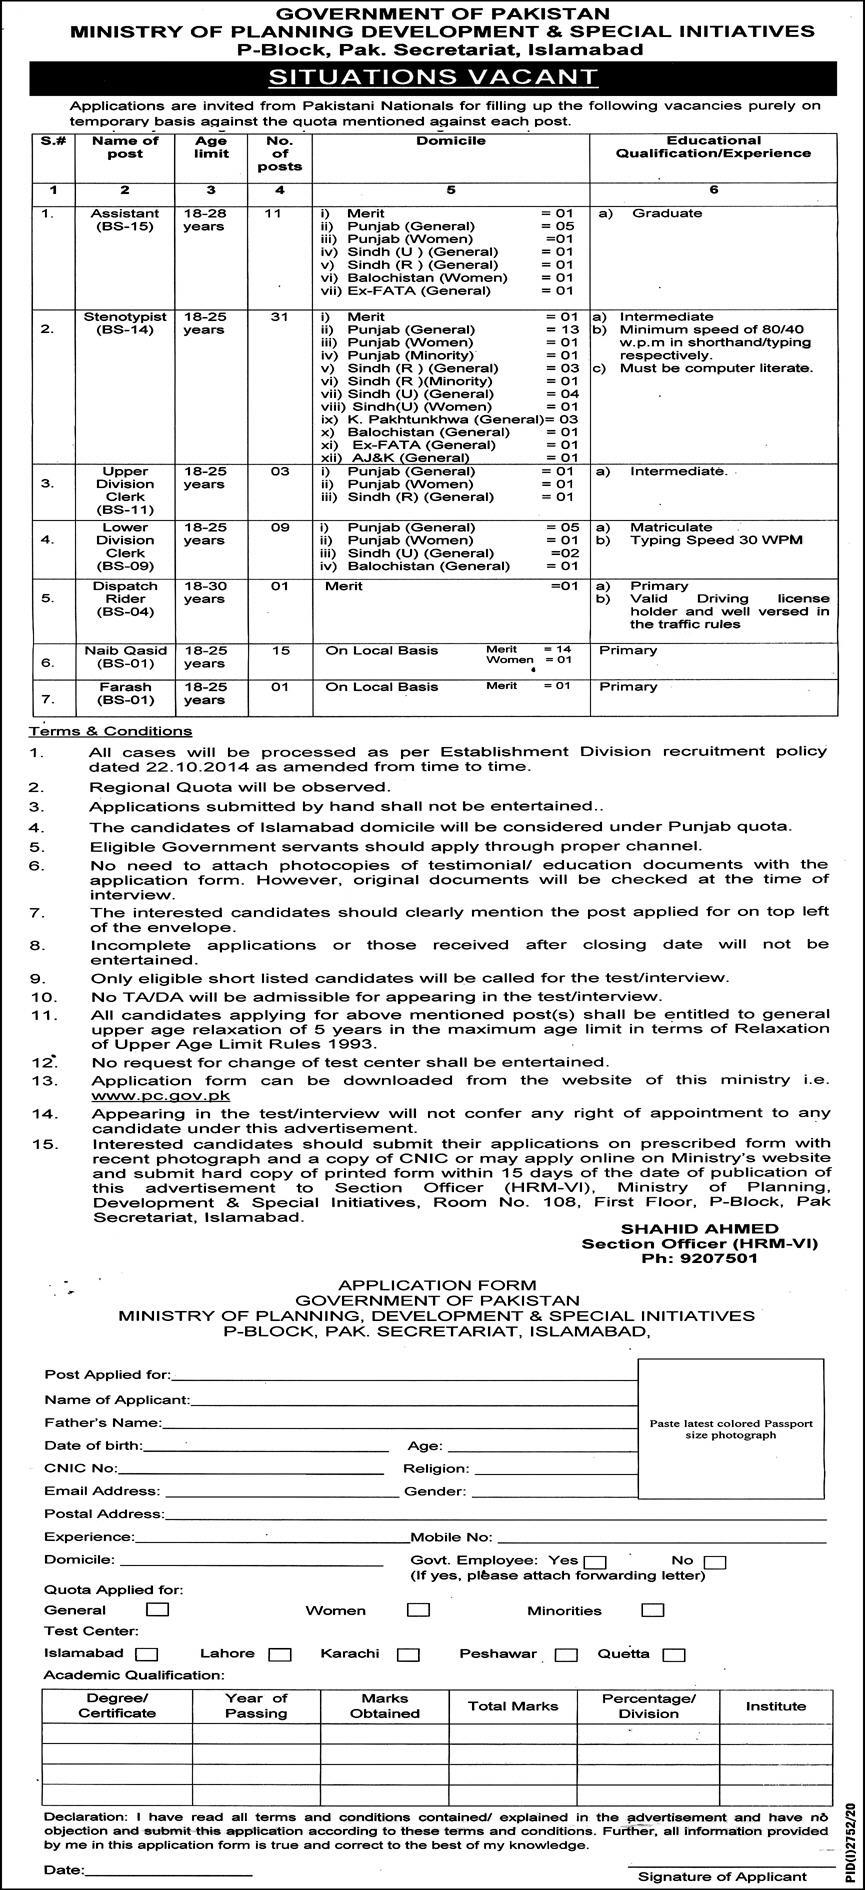 Ministry of Planning Development & Special Initiatives Jobs November 2020